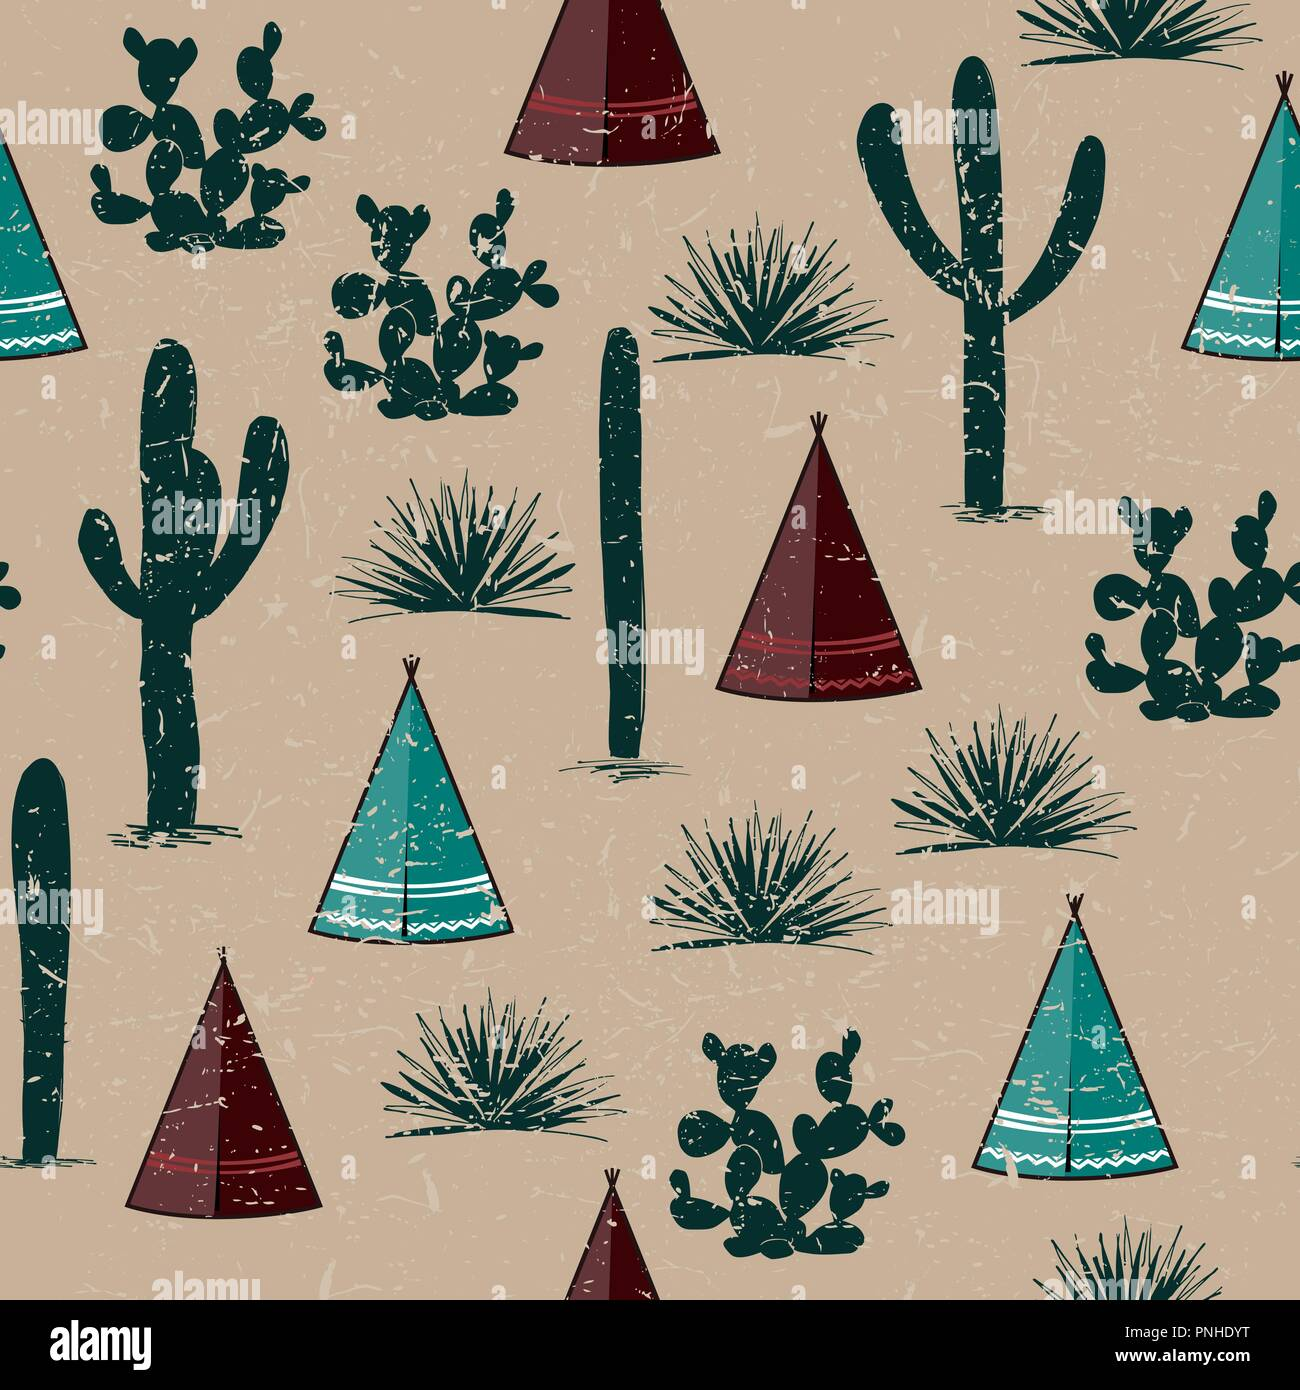 Indian tribal background. Simple flat wigwam, cactus, and grass. Seamless pattern landscape. Minimalist design. Cartoon illustration, vector - Stock Vector